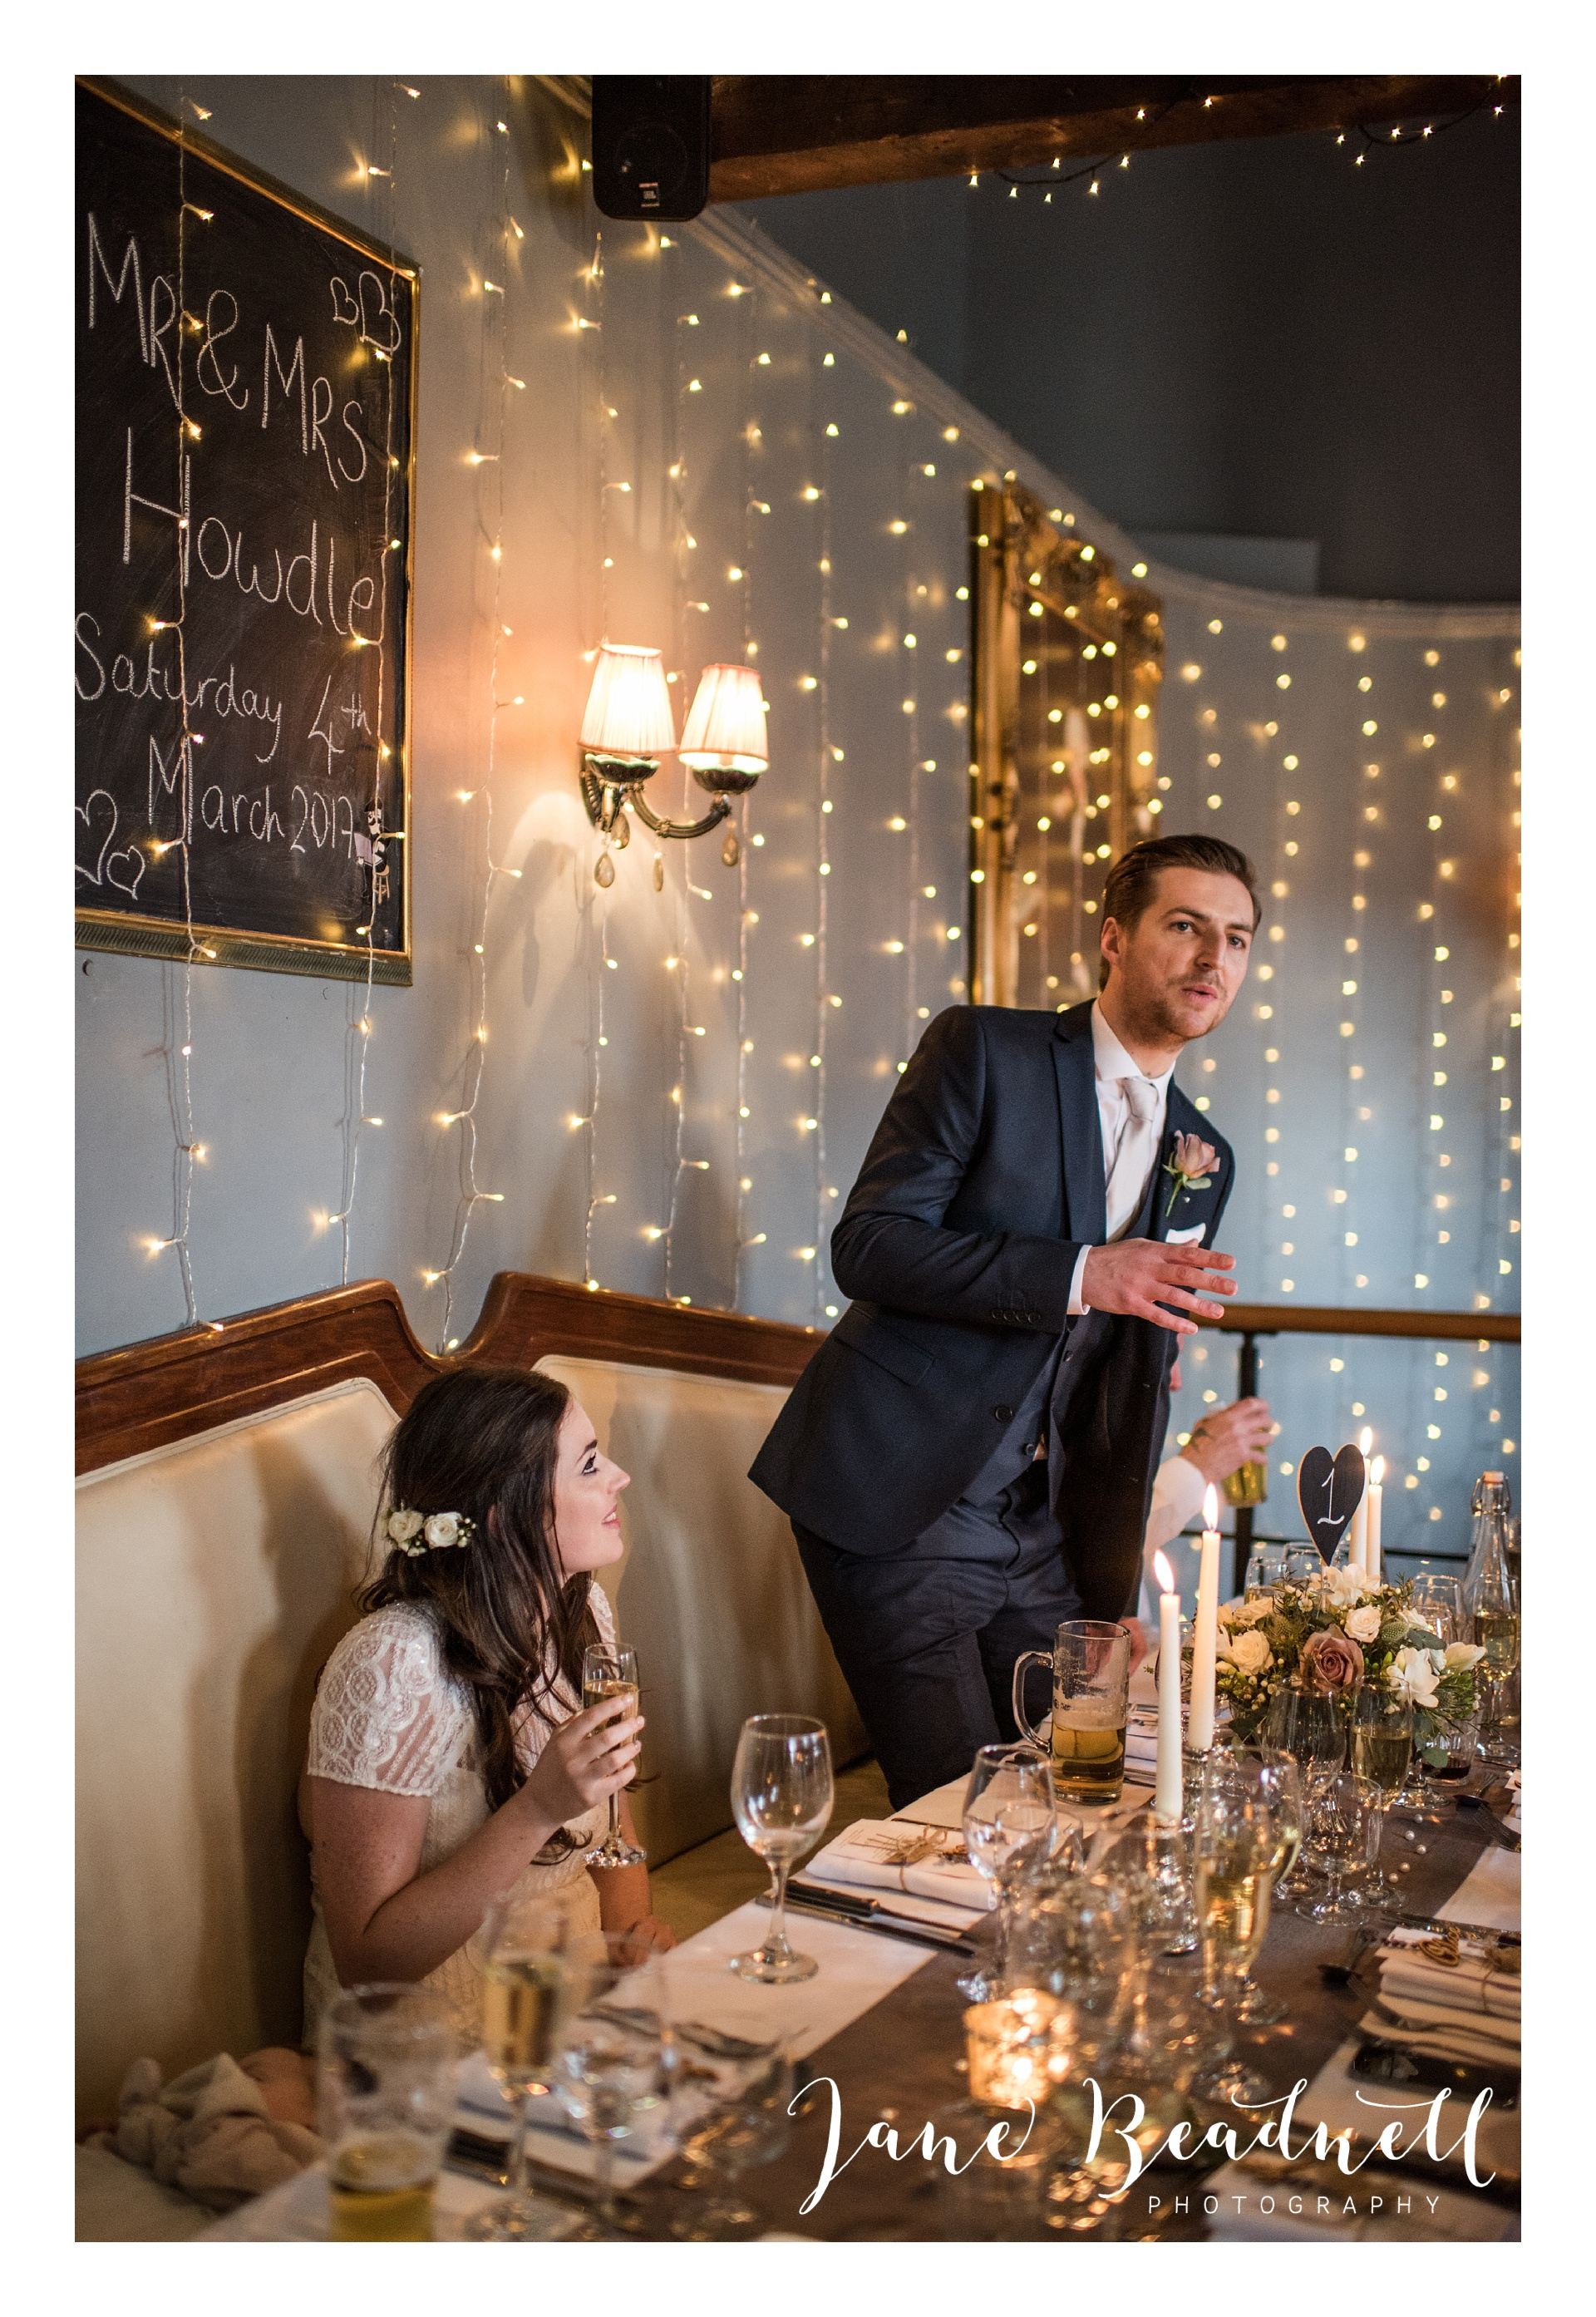 Wedding photography Cross Keys Leeds Wedding Jane Beadnell Photography_0131